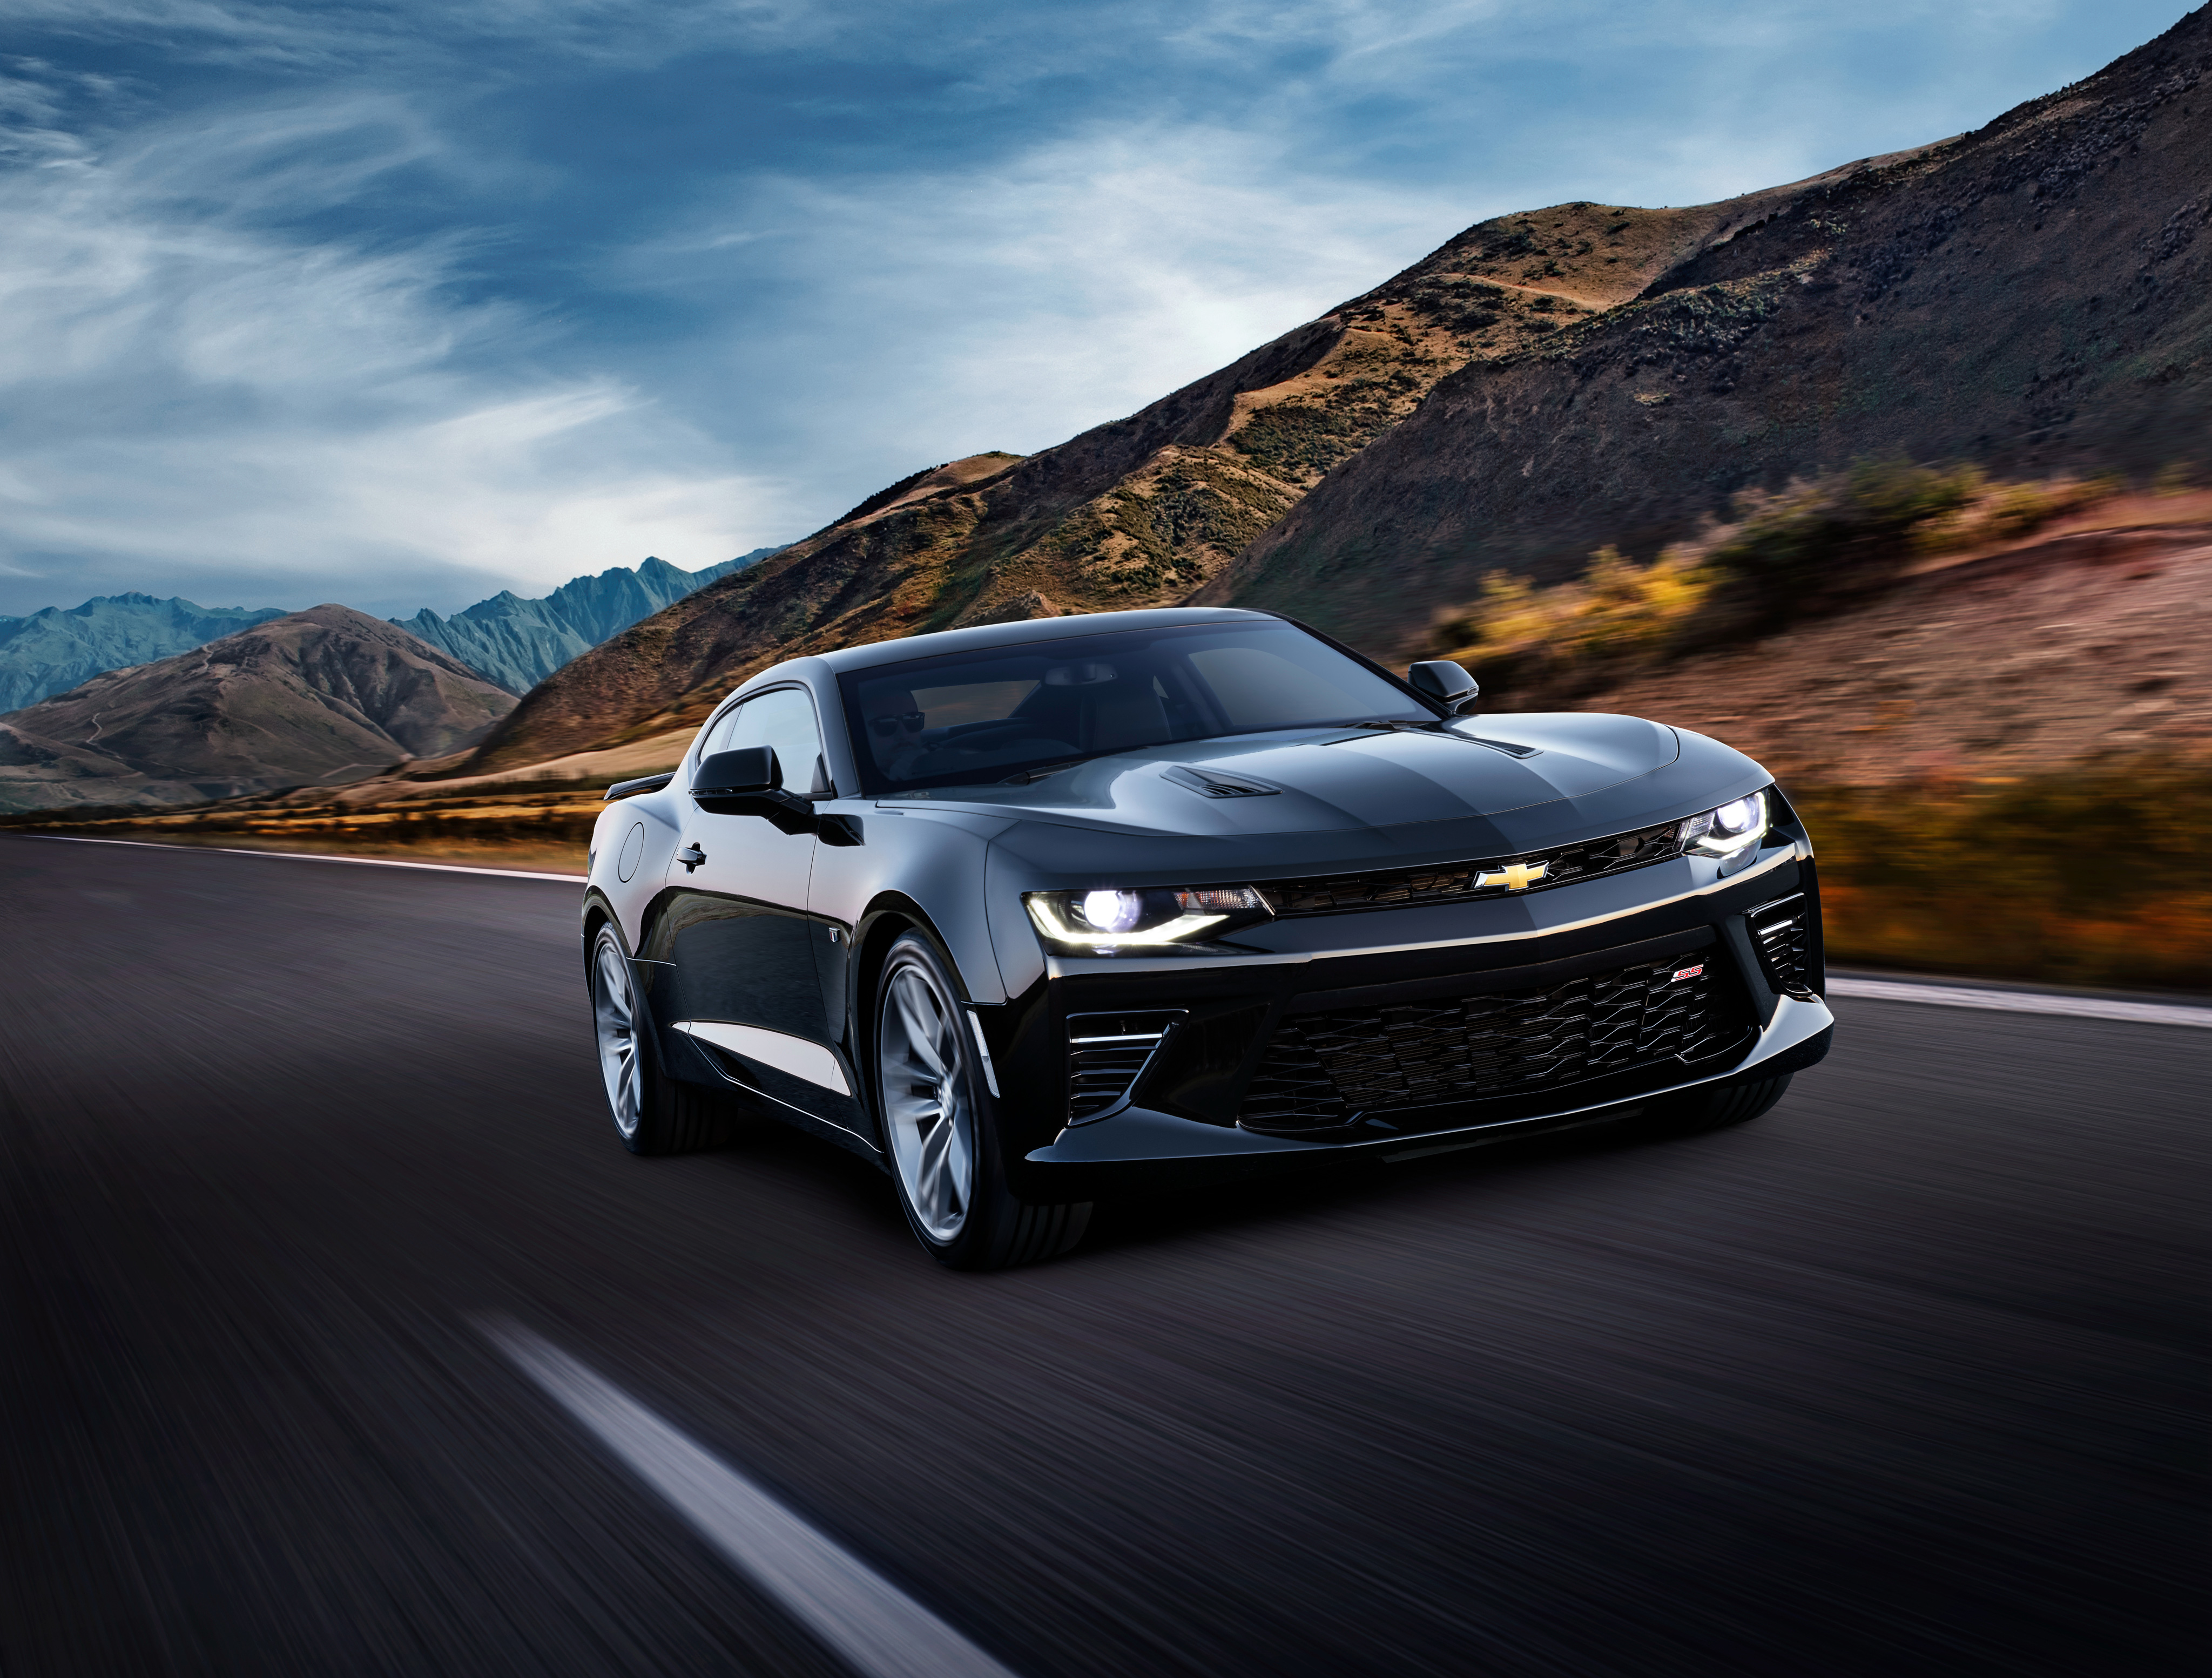 Chevrolet Camaro Ss 2018 4k Hd Cars 4k Wallpapers Images